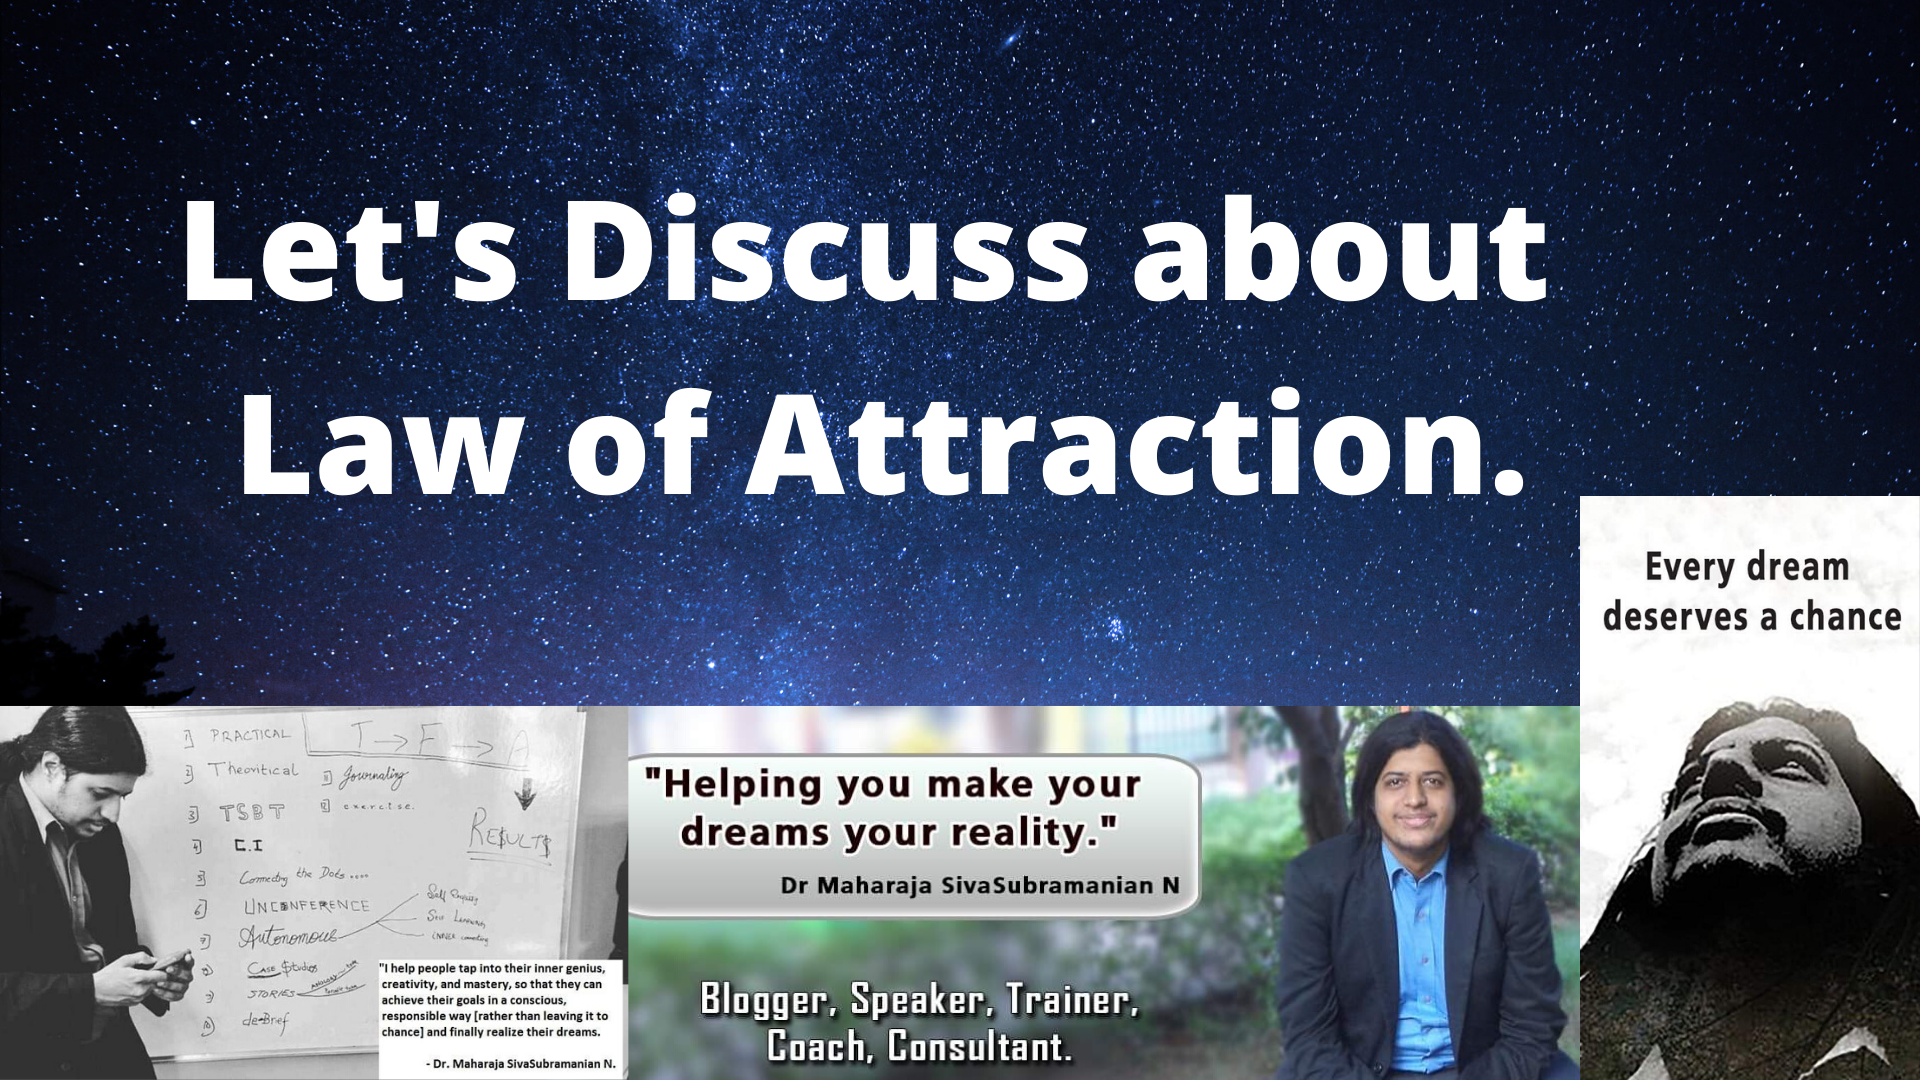 Law of Attraction. Let's discuss about Law of Attraction.